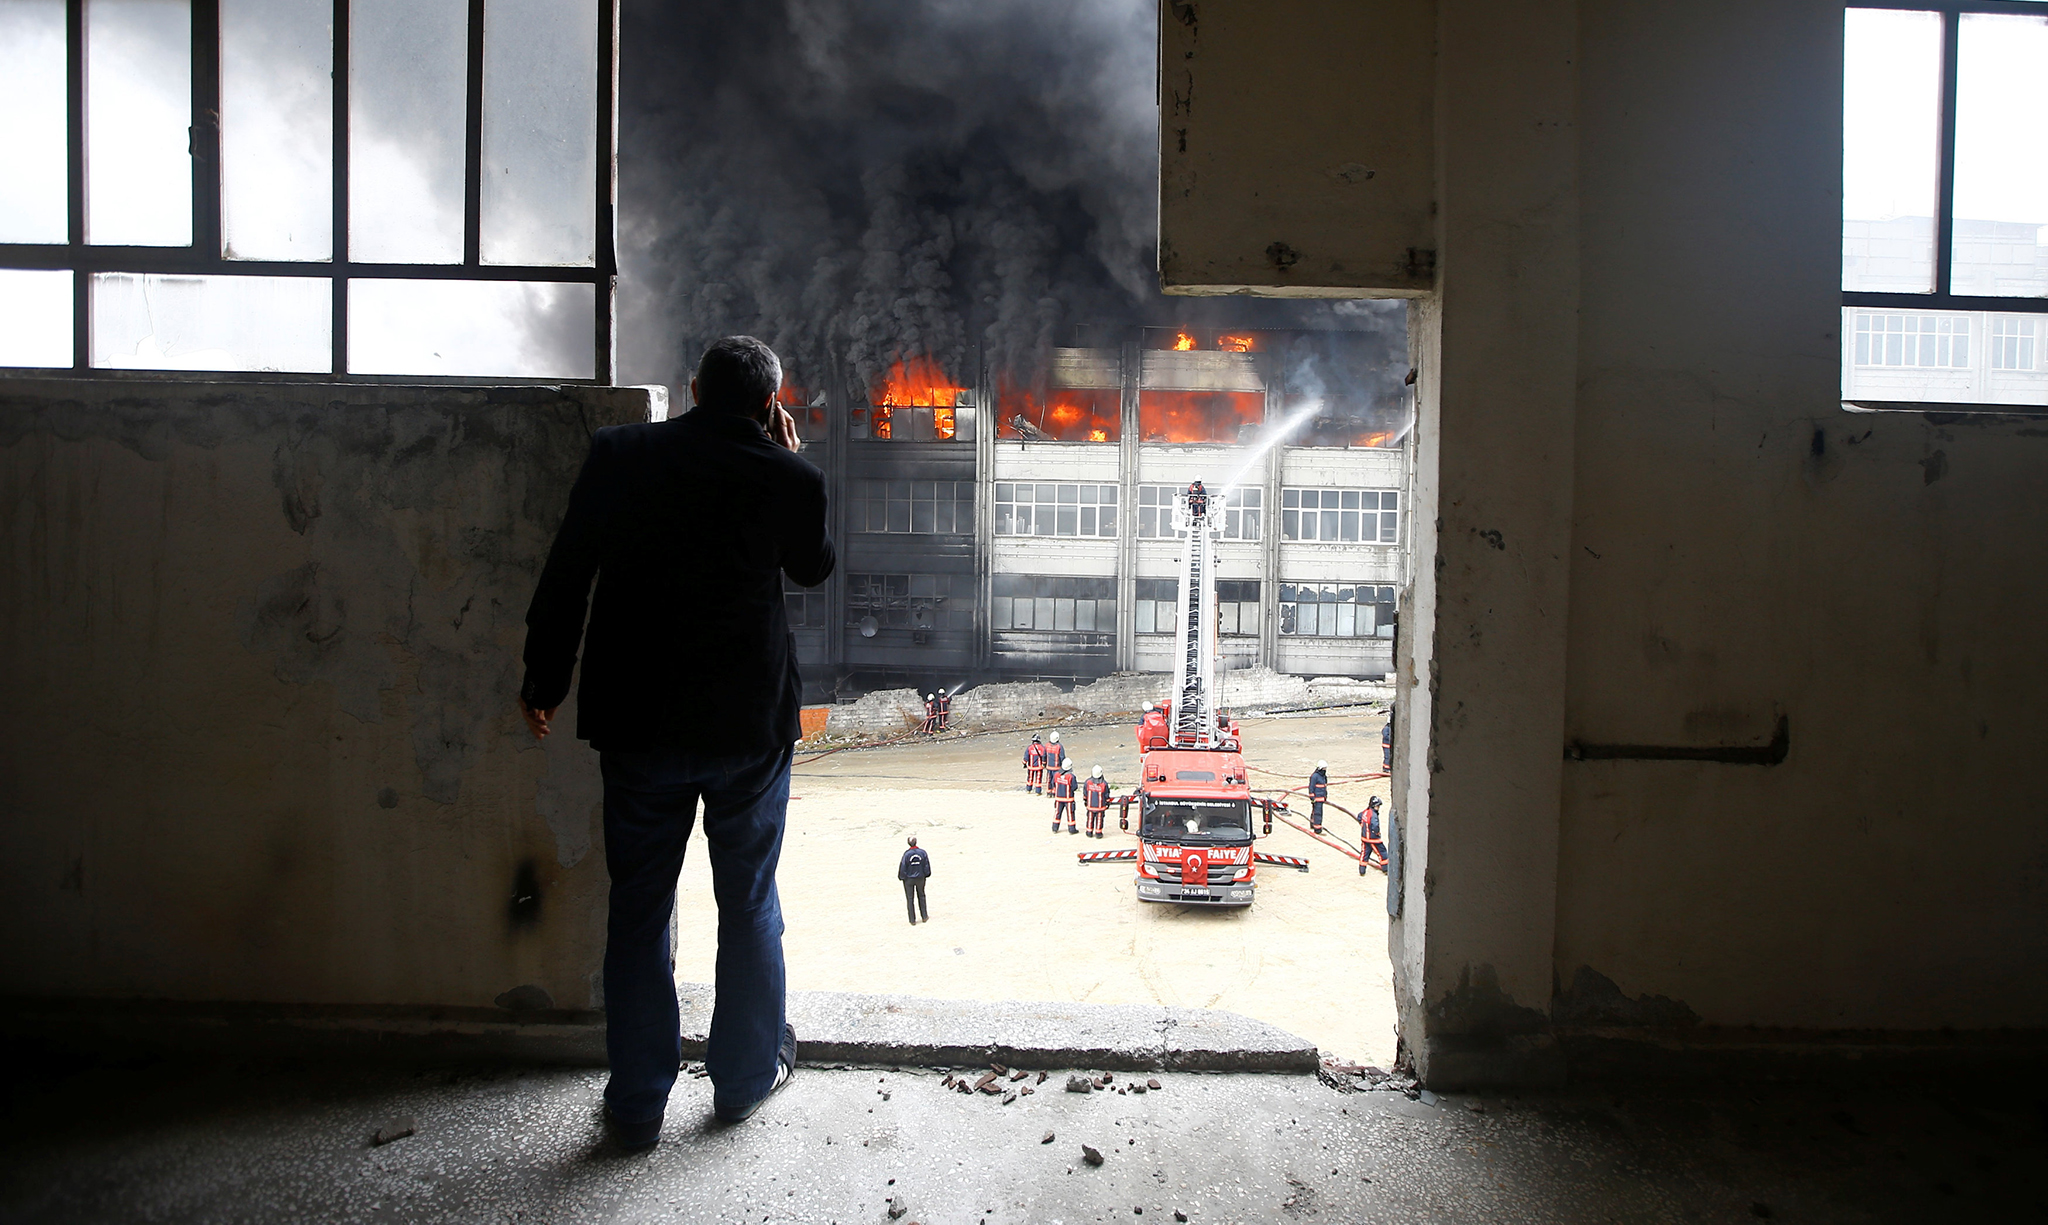 A man watches as firemen try to extinguish a fire at a plastic factory in Istanbul, Turkey, November 22, 2016. The cause of the fire is currently unknown, according to local media. REUTERS/Osman Orsal